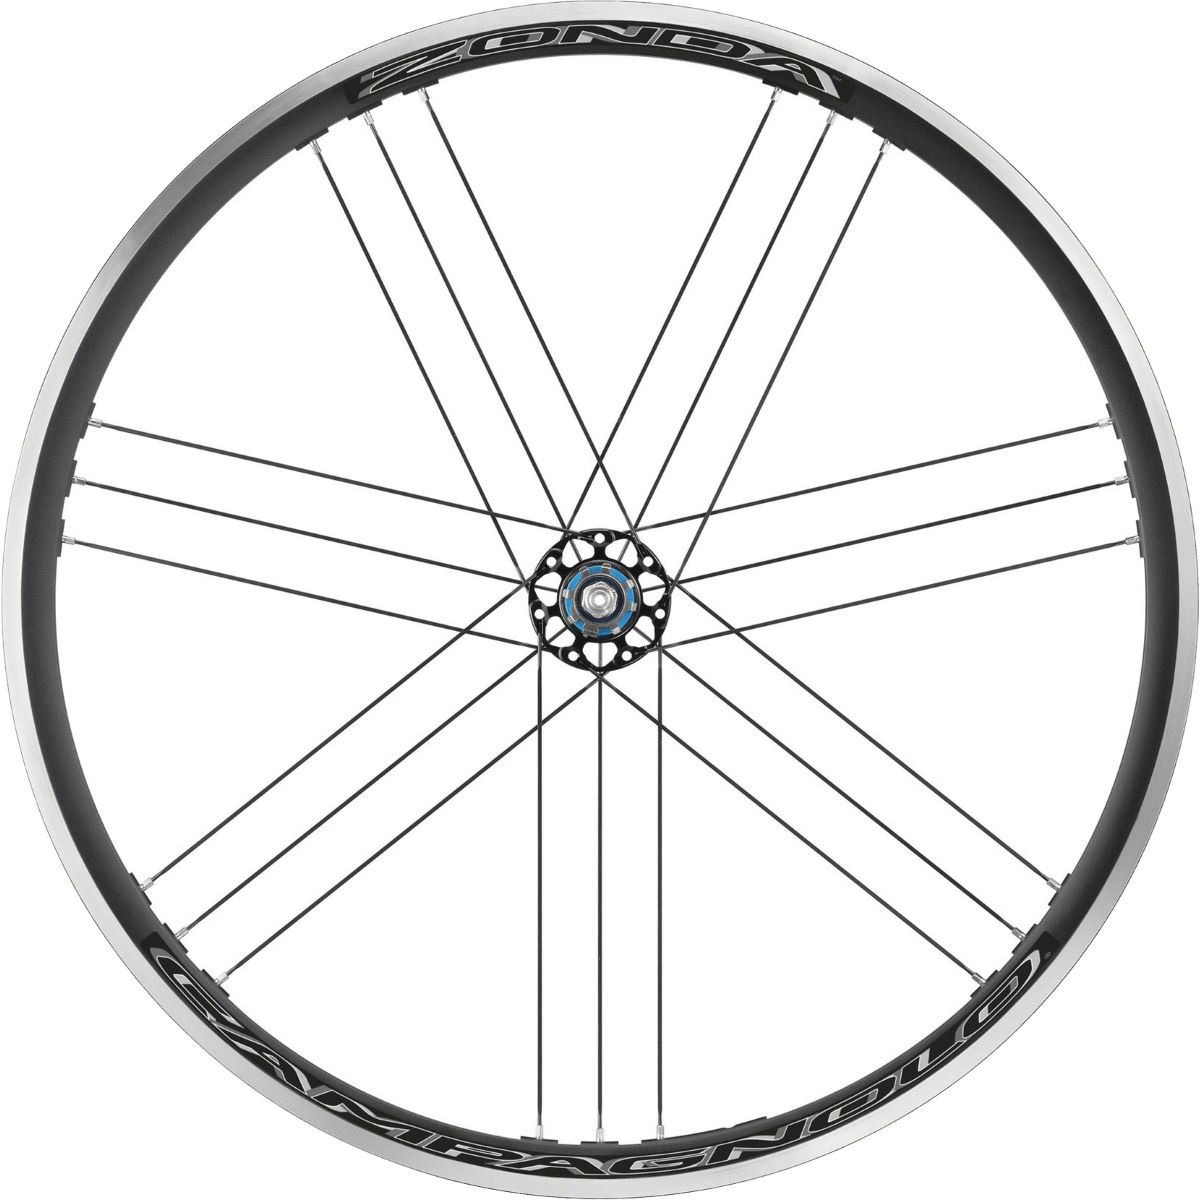 Campagnolo Zonda C17 Rear Road Wheel - Rear wheels